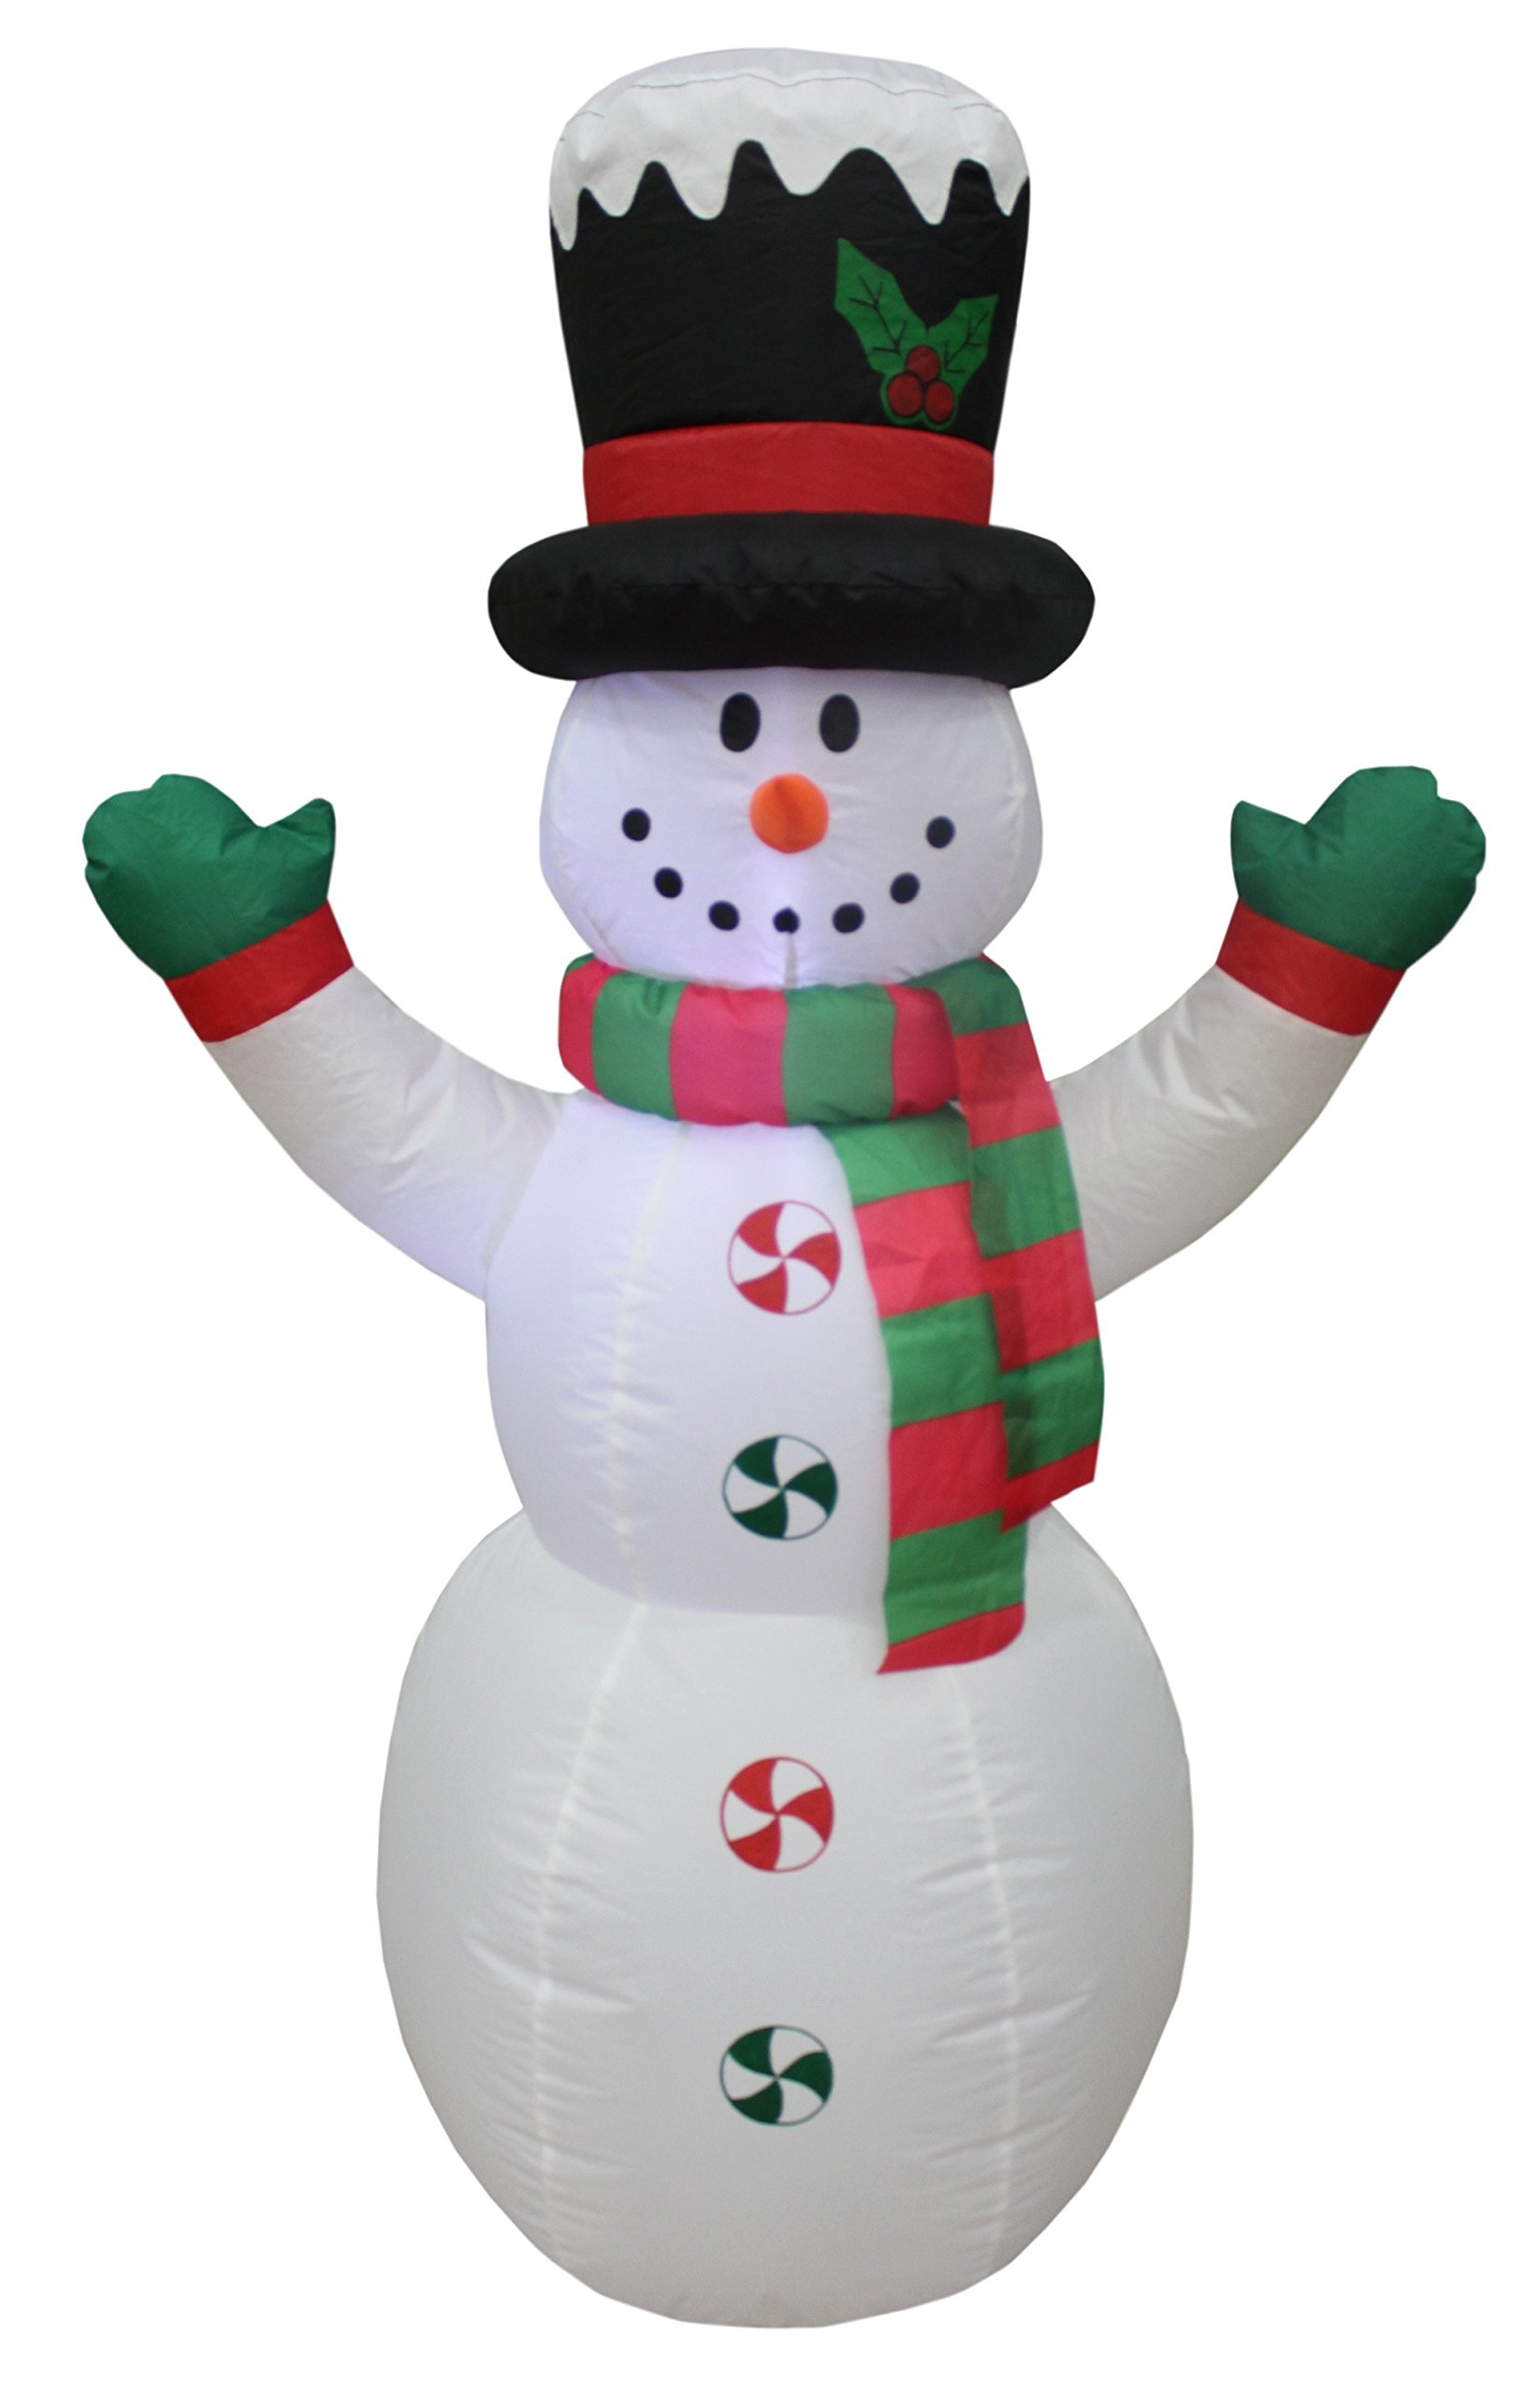 4 foot tall lighted christmas inflatable snowman with hat led yard art decoration - Amazon Outdoor Lighted Christmas Decorations